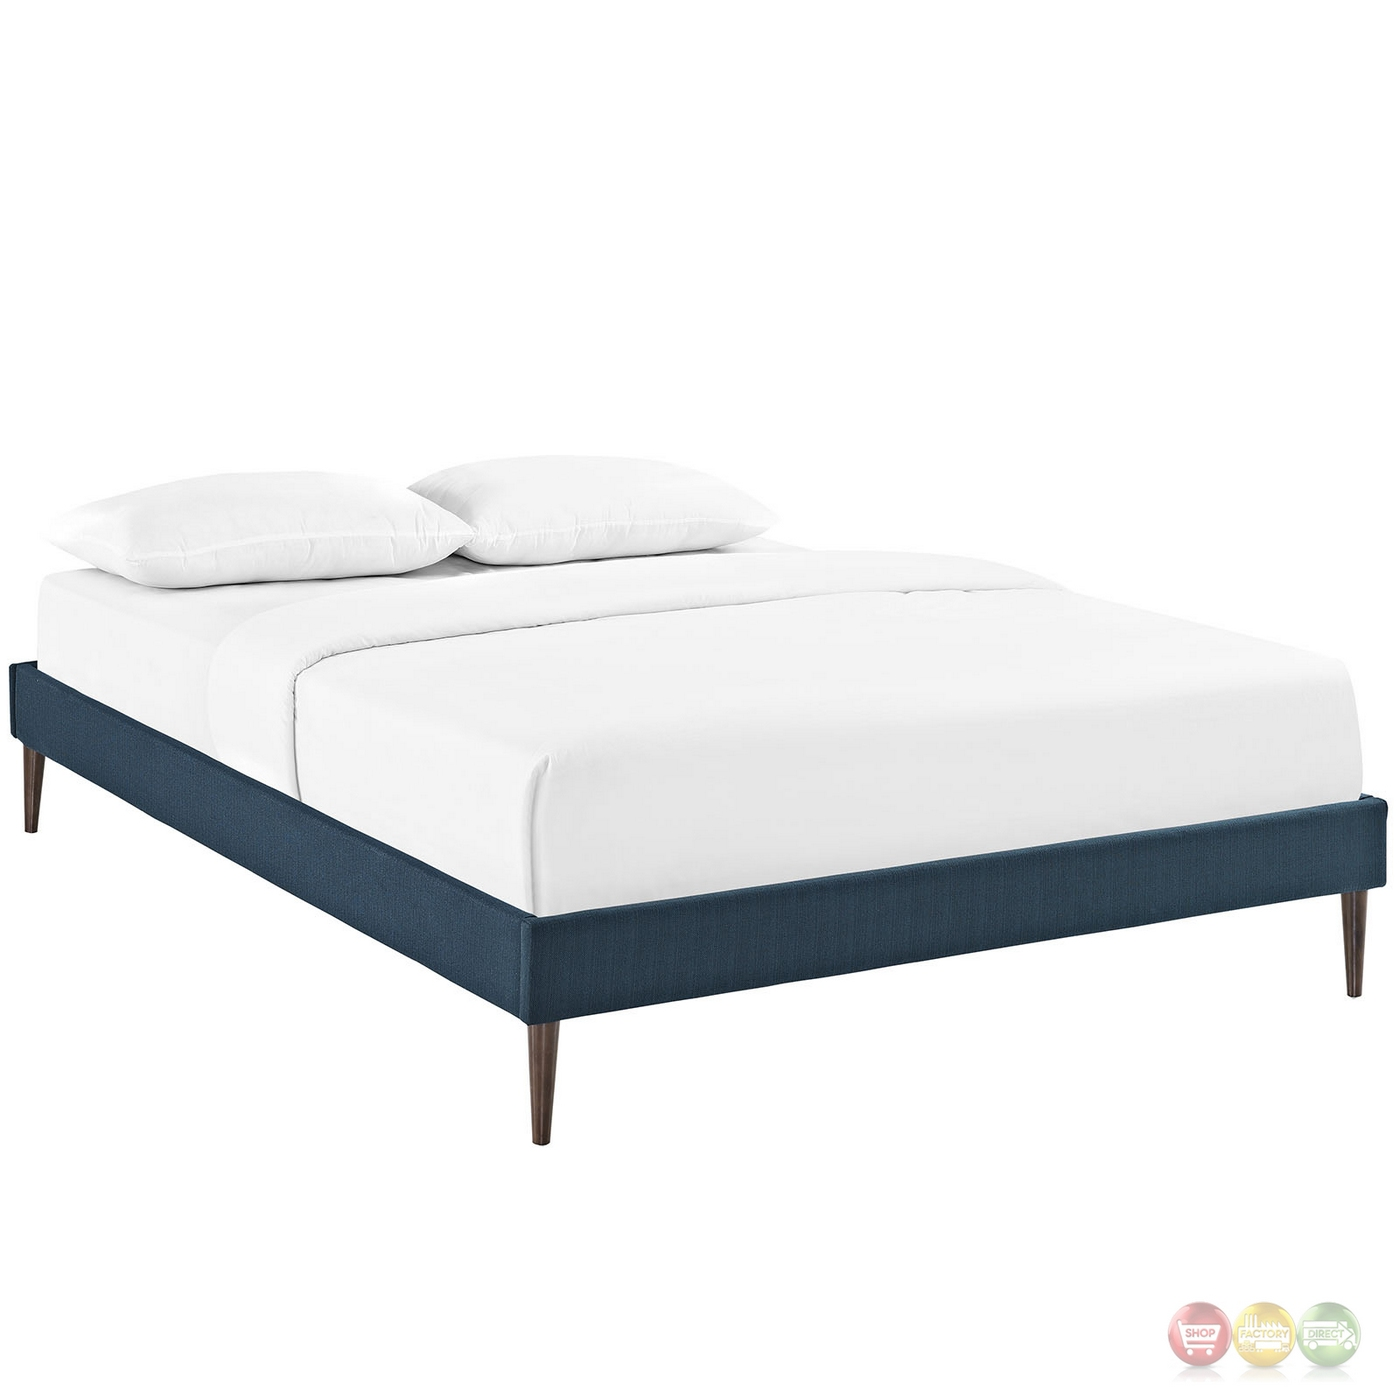 Sherry Upholstered Fabric King Platform Bed Frame Azure